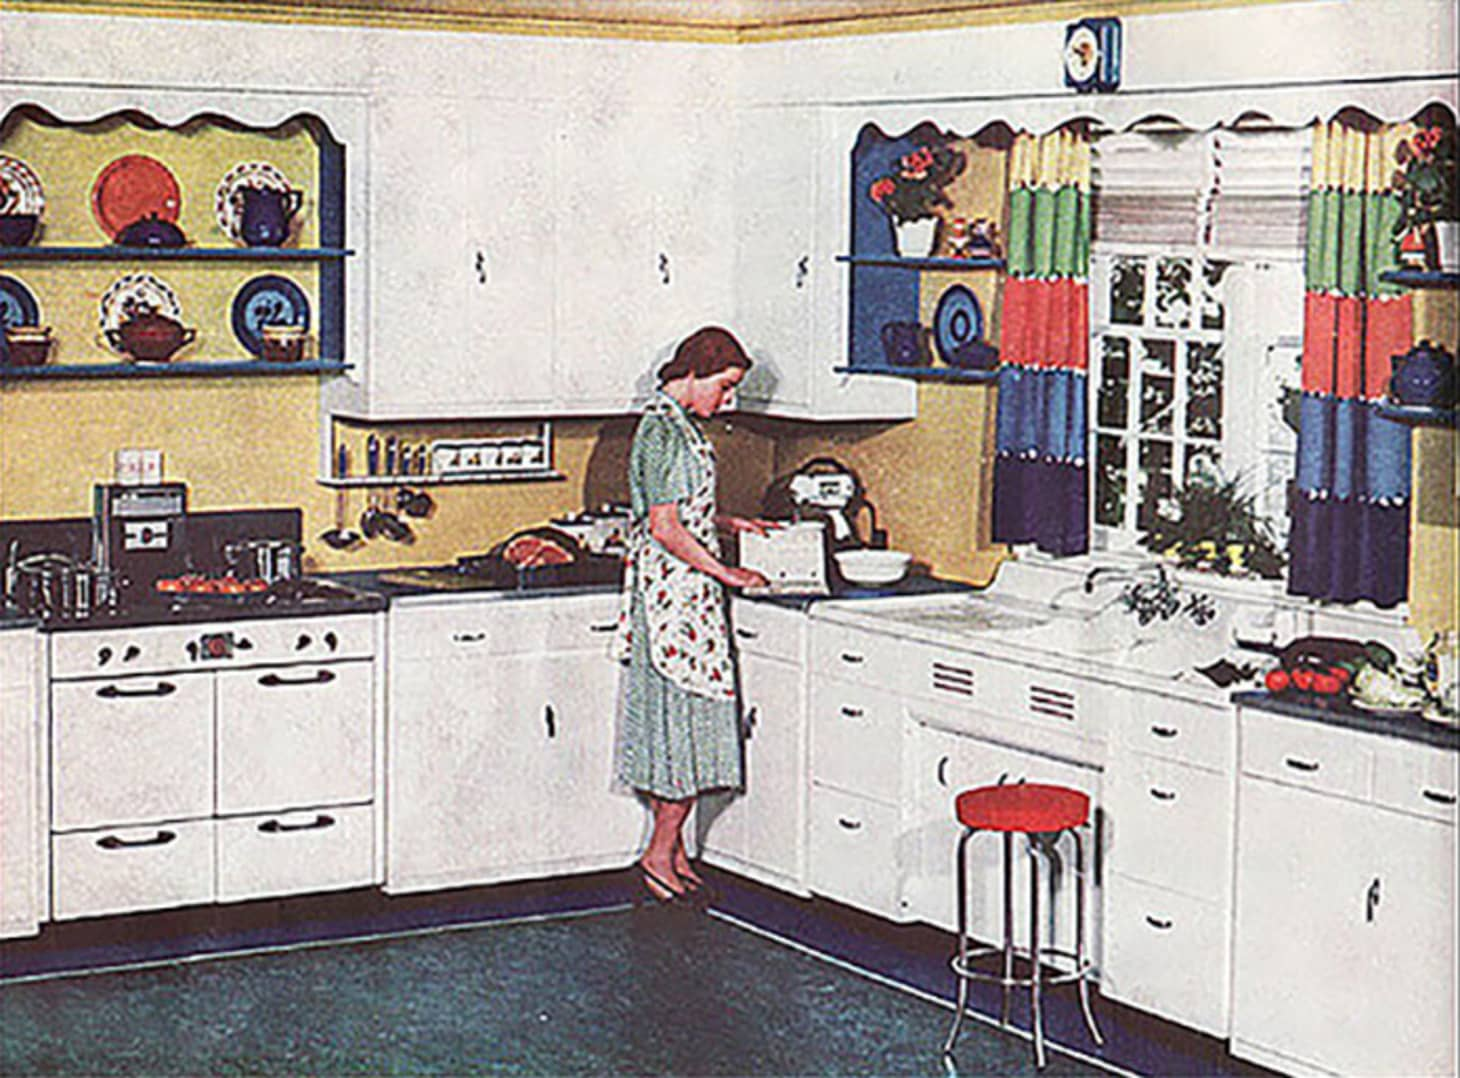 A Brief History of Kitchen Design from the 1930s to 1940s ... on chinese kitchen ideas, outdated kitchen ideas, easy install kitchen backsplash ideas, italy kitchen ideas, pine kitchen ideas, retro kitchen ideas, saltbox kitchen ideas, high gloss black kitchen ideas, craft kitchen ideas, fiesta kitchen ideas, exotic kitchen ideas, stained kitchen ideas, glass kitchen ideas, pewter kitchen ideas, mahogany kitchen ideas, vintage small kitchen ideas, rustic kitchen ideas, country kitchen ideas, furniture kitchen ideas, california kitchen ideas,